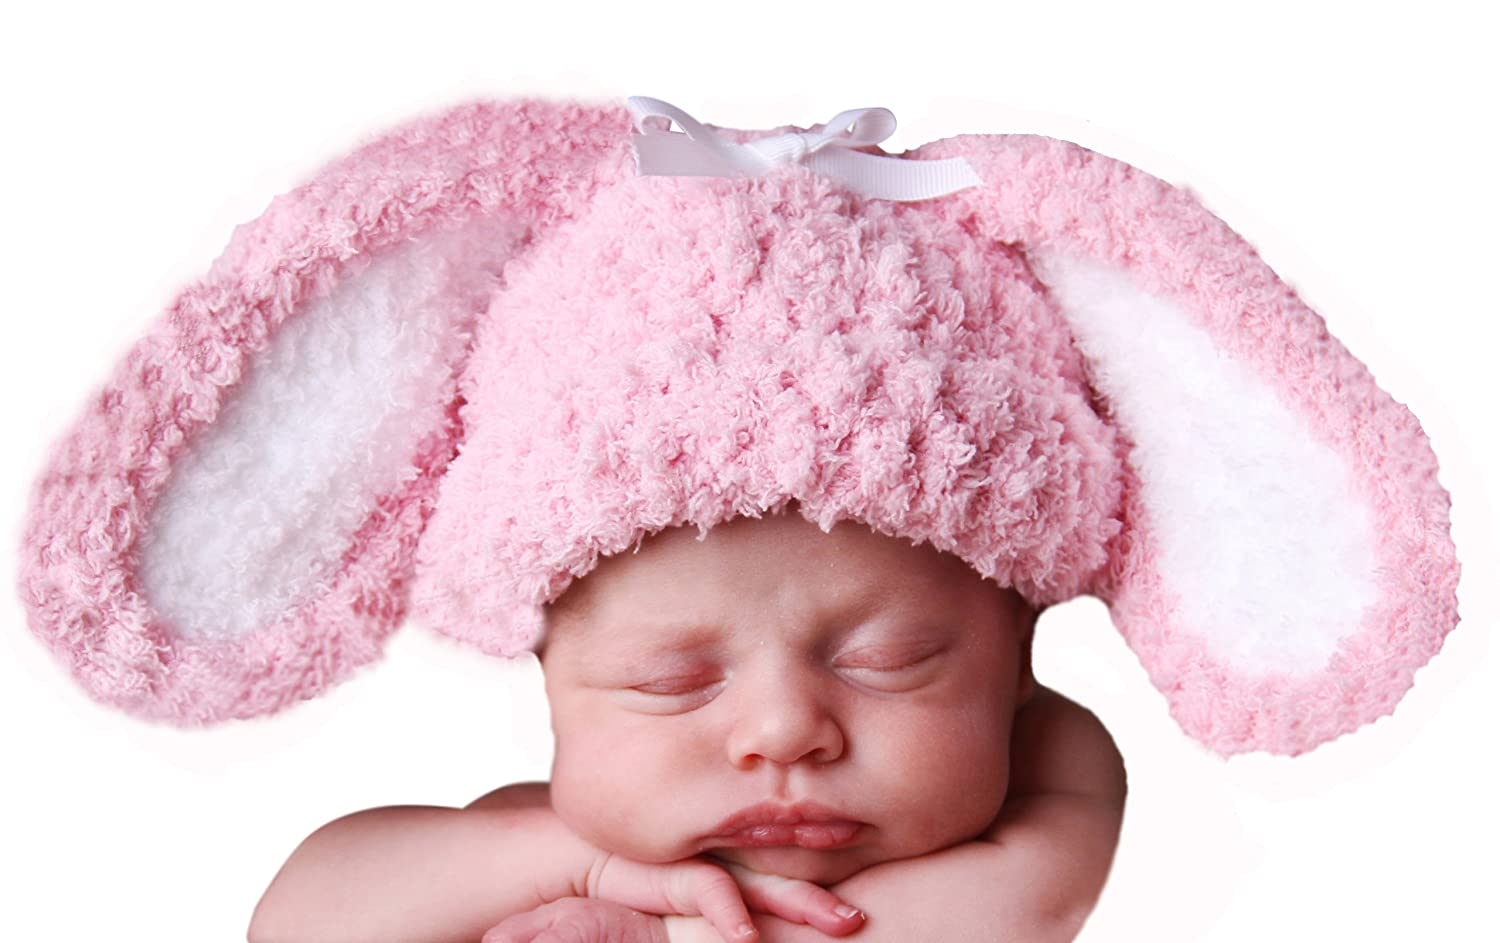 9db11f67a1a2b Amazon.com  Melondipity Adorable Pink Floppy Ear Bunny Hat for Newborn    Baby Girls Handmade in the USA (0-6 months)  Infant And Toddler Hats   Clothing